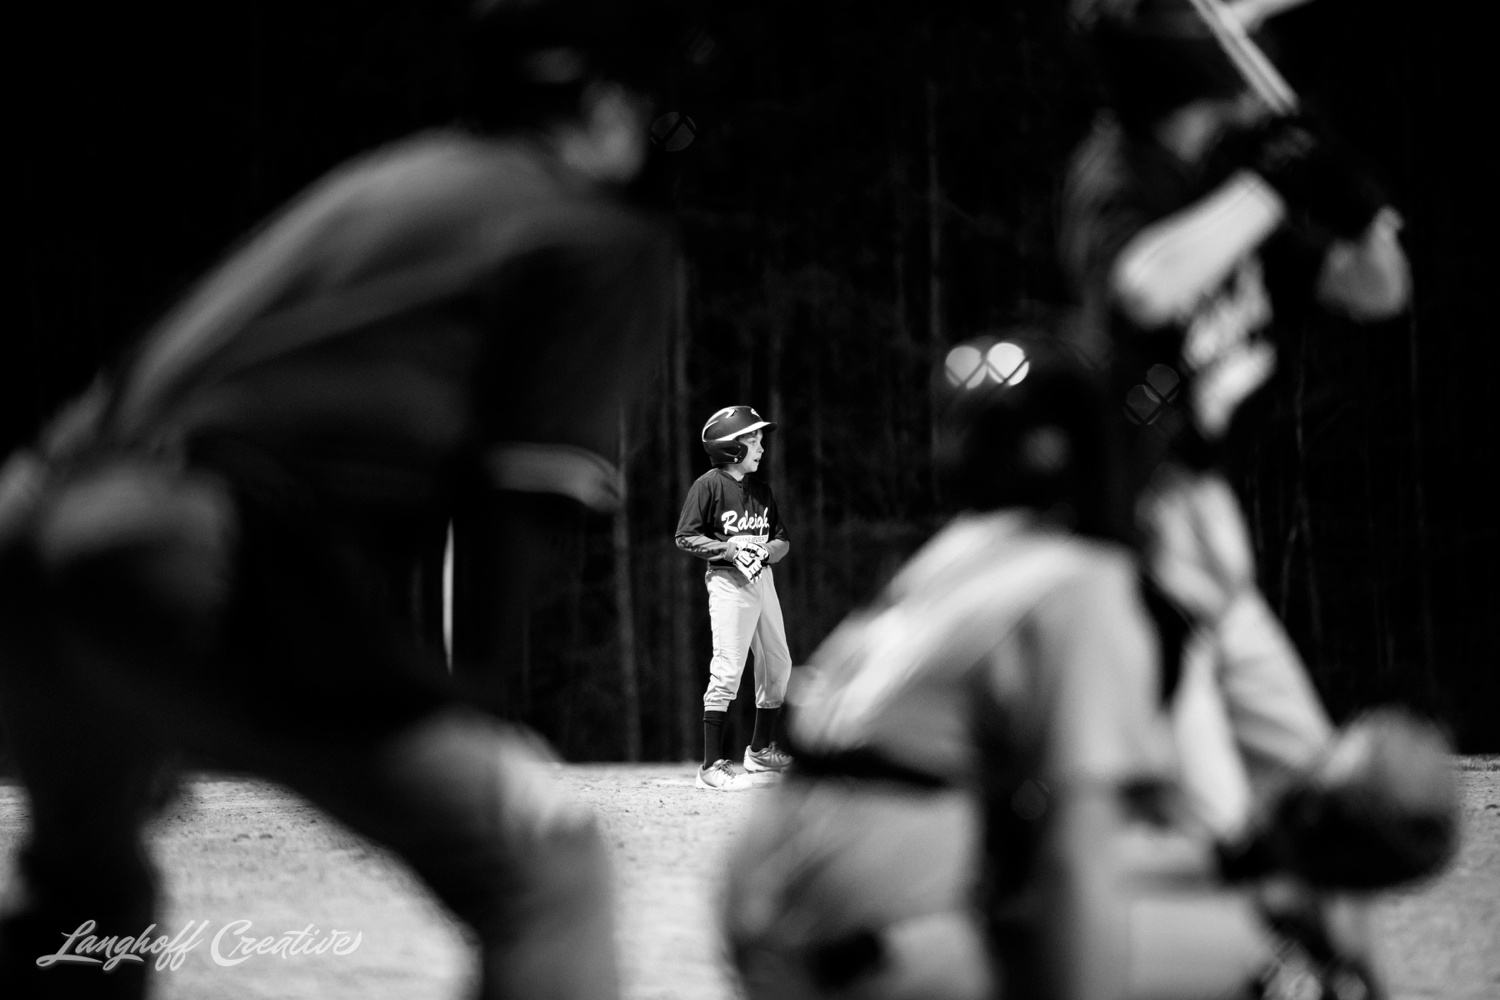 DocumentaryFamilySession-DocumentaryFamilyPhotography-RDUfamily-Baseball-RealLifeSession-LanghoffCreative-George-2018-21-image.jpg